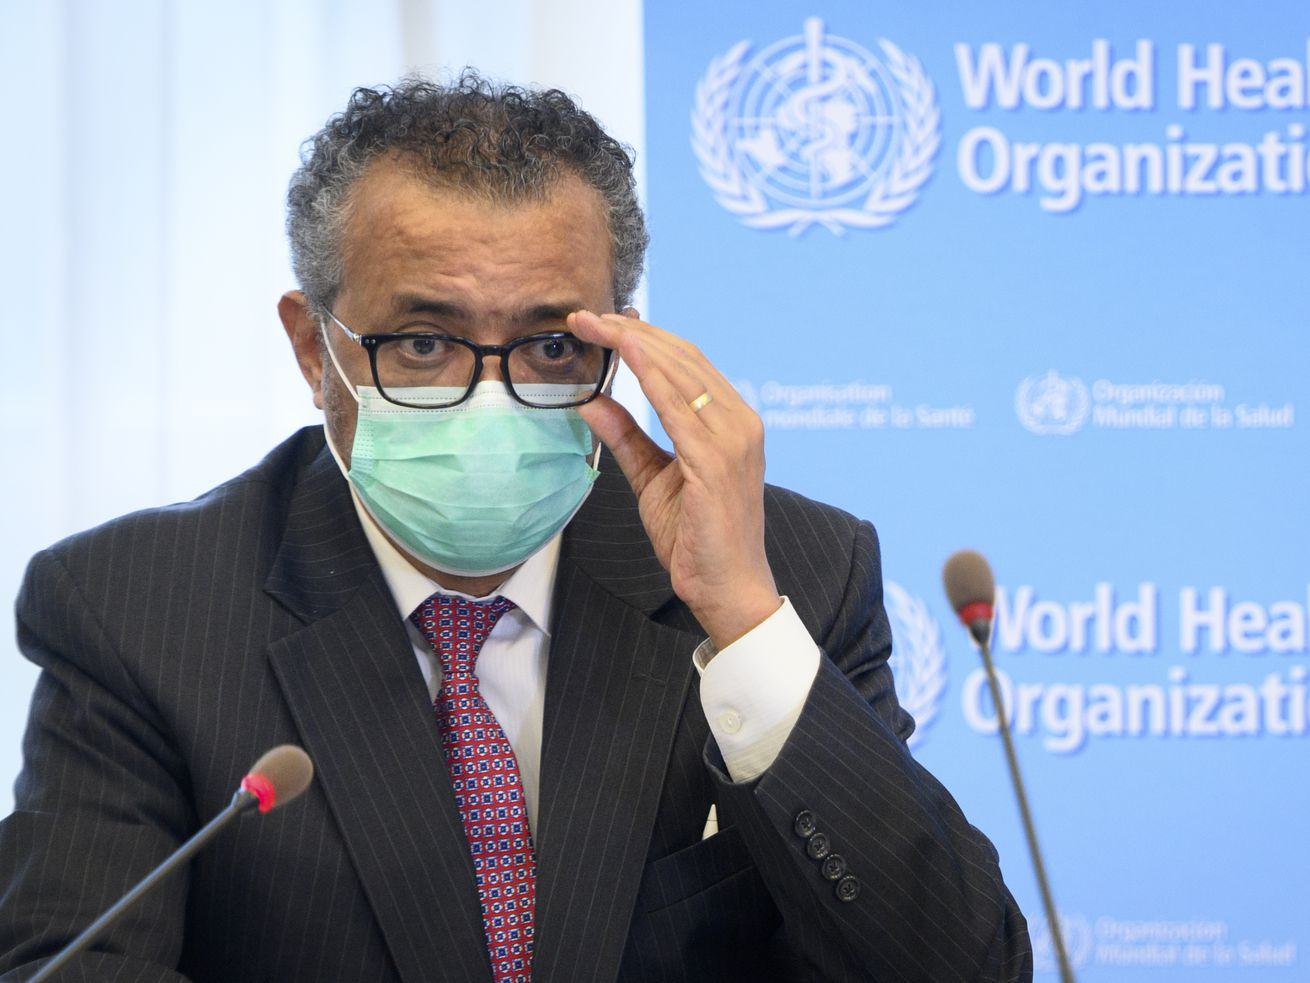 """""""The mark of success is making sure that any cases are identified, isolated, traced and cared for as quickly as possible and onward transmission is interrupted,"""" WHO director general Tedros Adhanom Ghebreyesus said."""